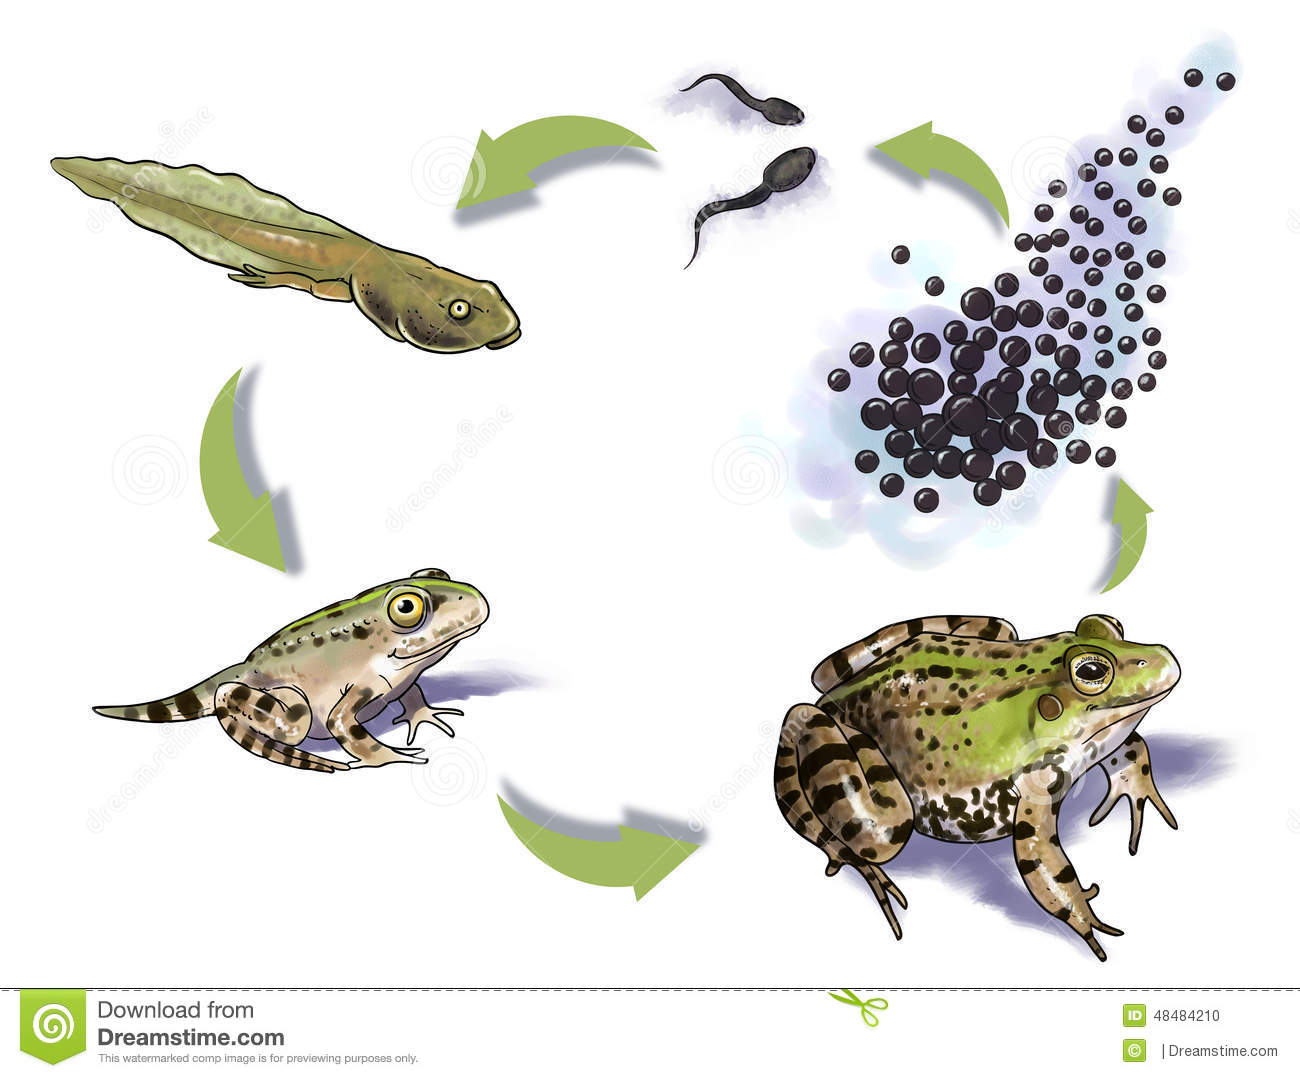 Digital illustration of a Frog life cycle.